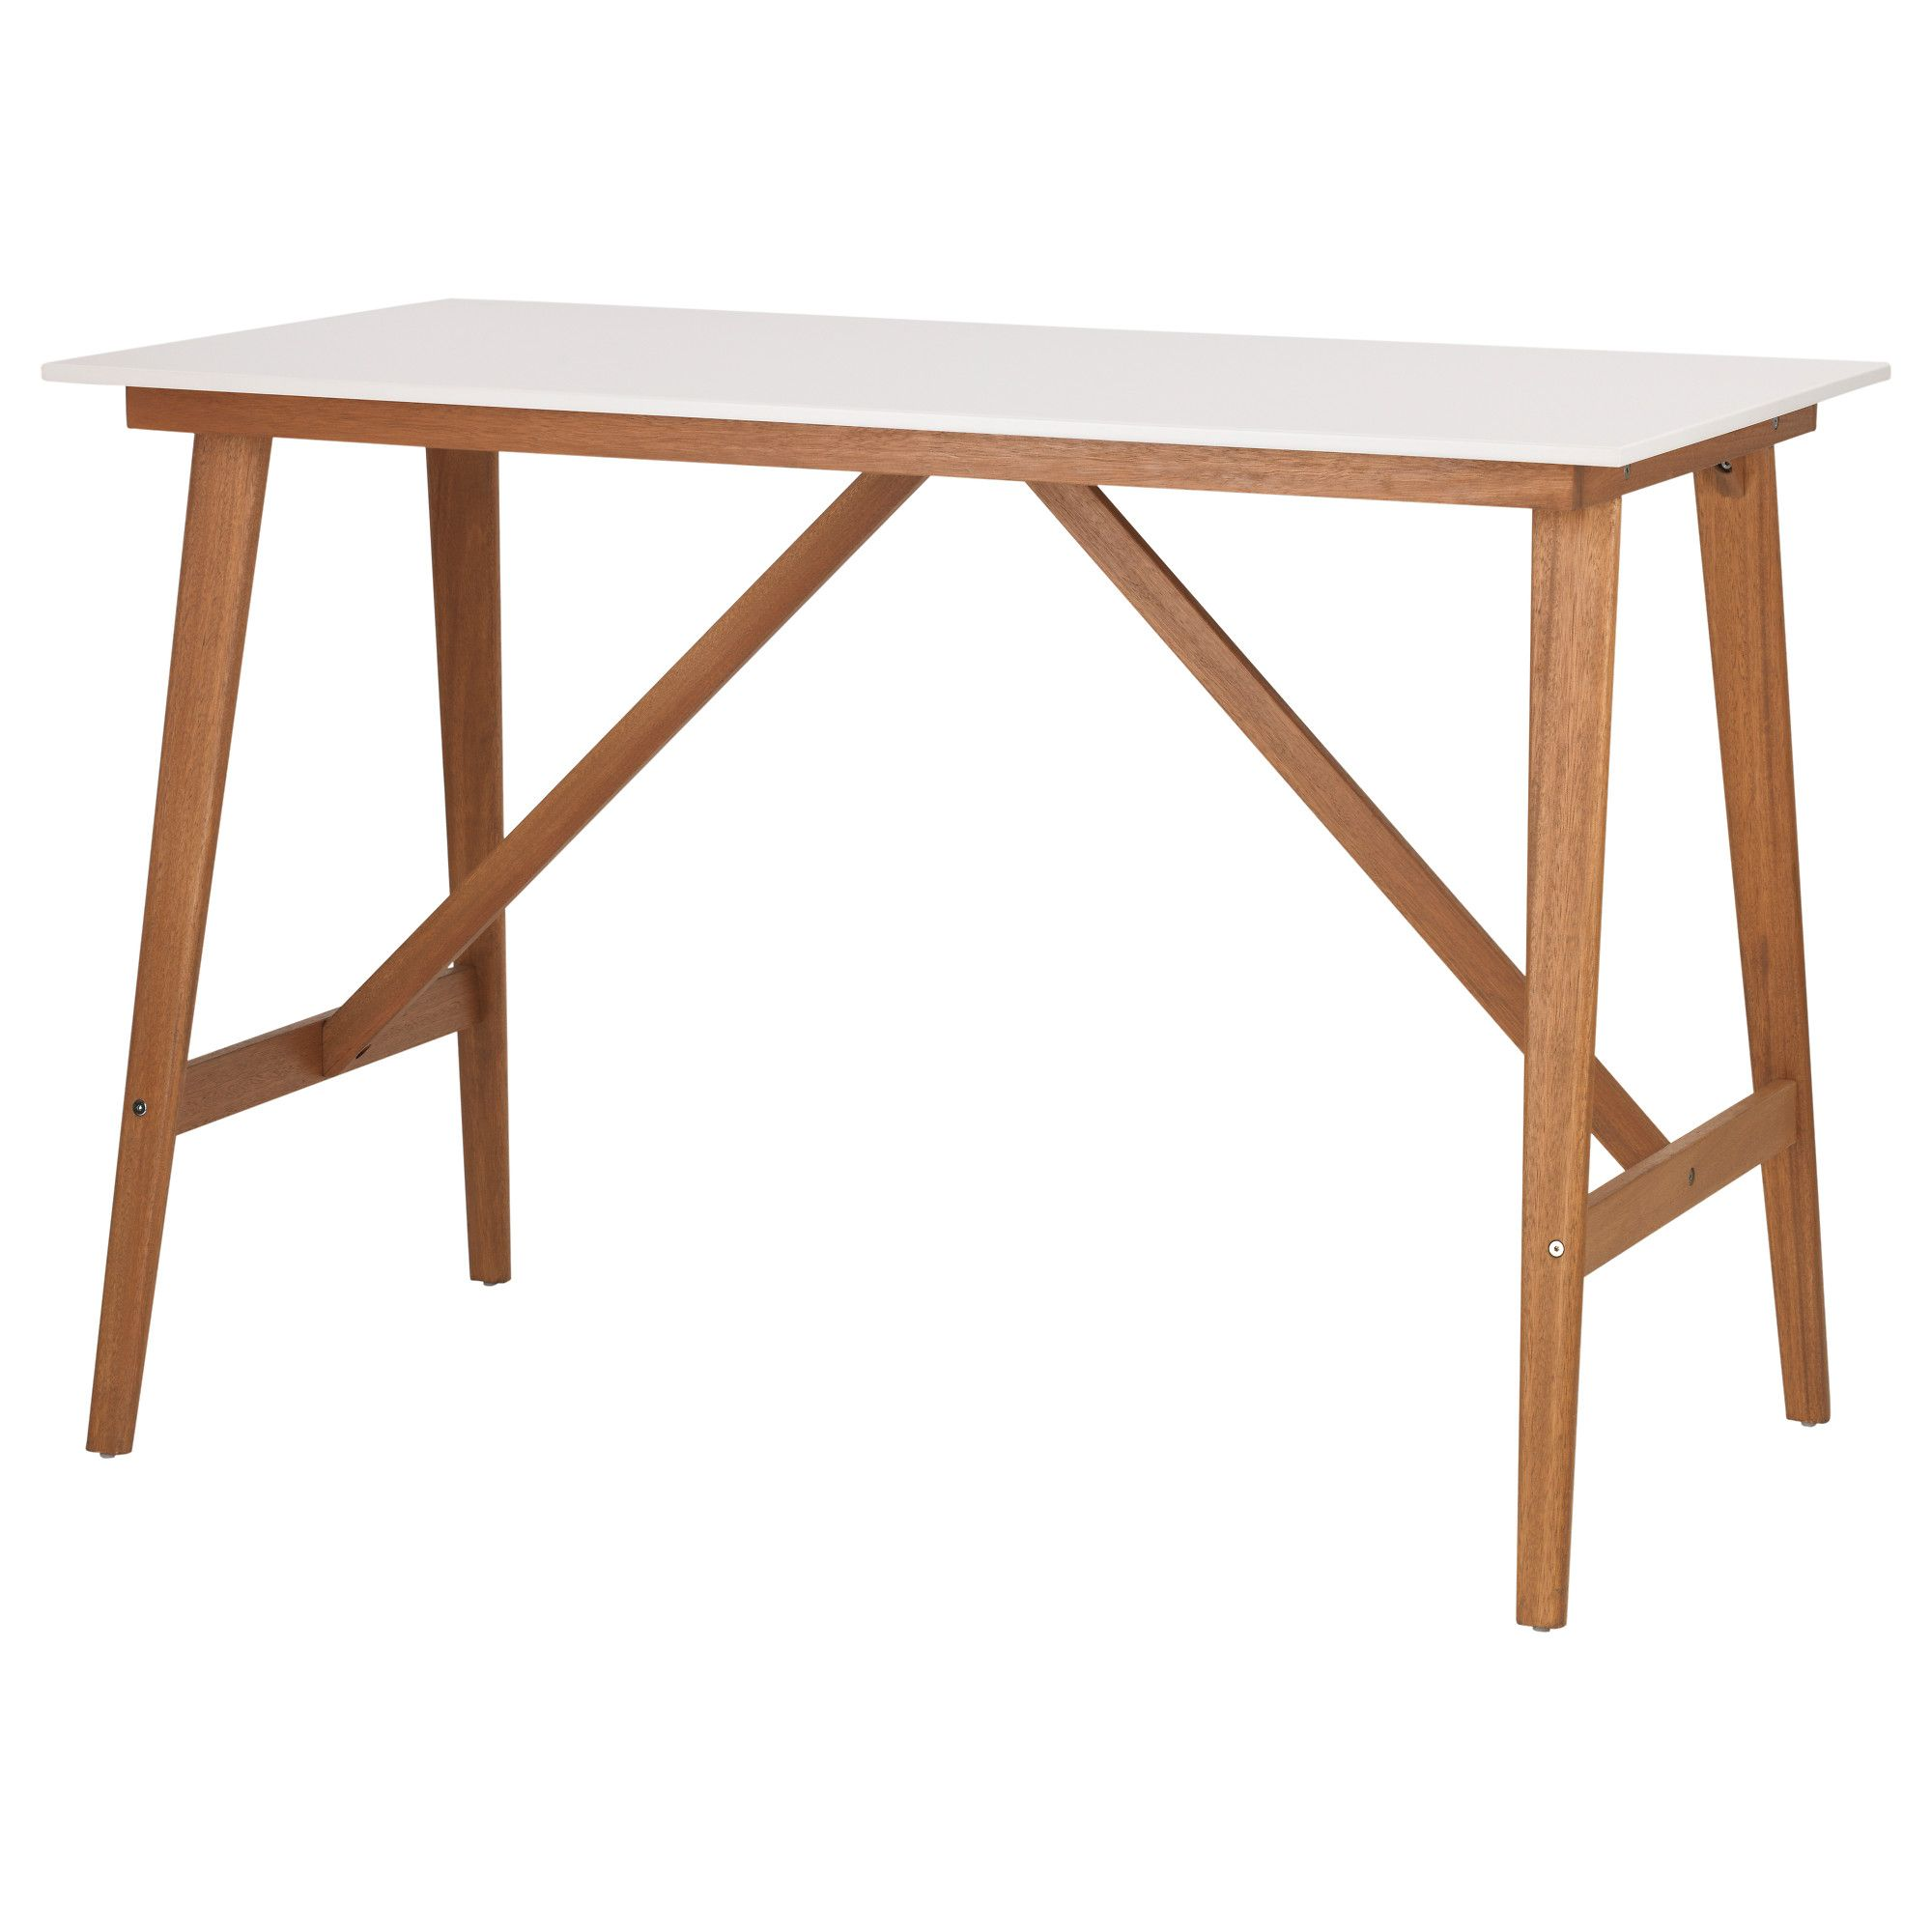 Ikea Breakfast Table: IKEA FANBYN White Bar Table